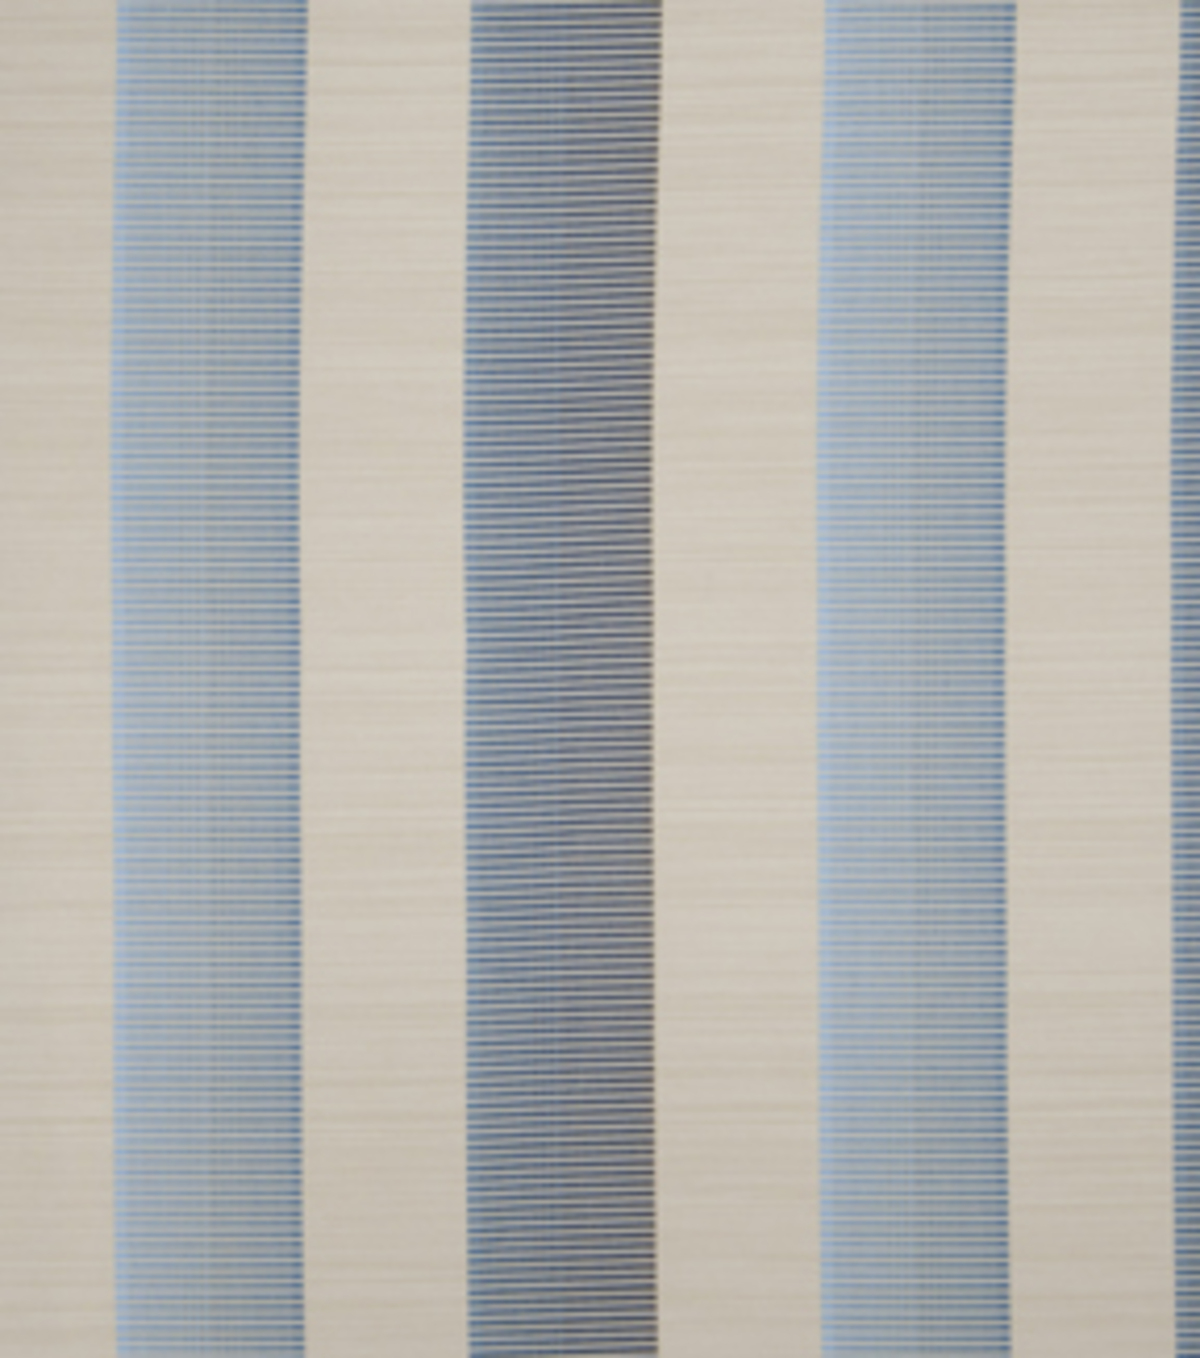 Home Decor 8\u0022x8\u0022 Fabric Swatch-Bella Dura Prompt Pool